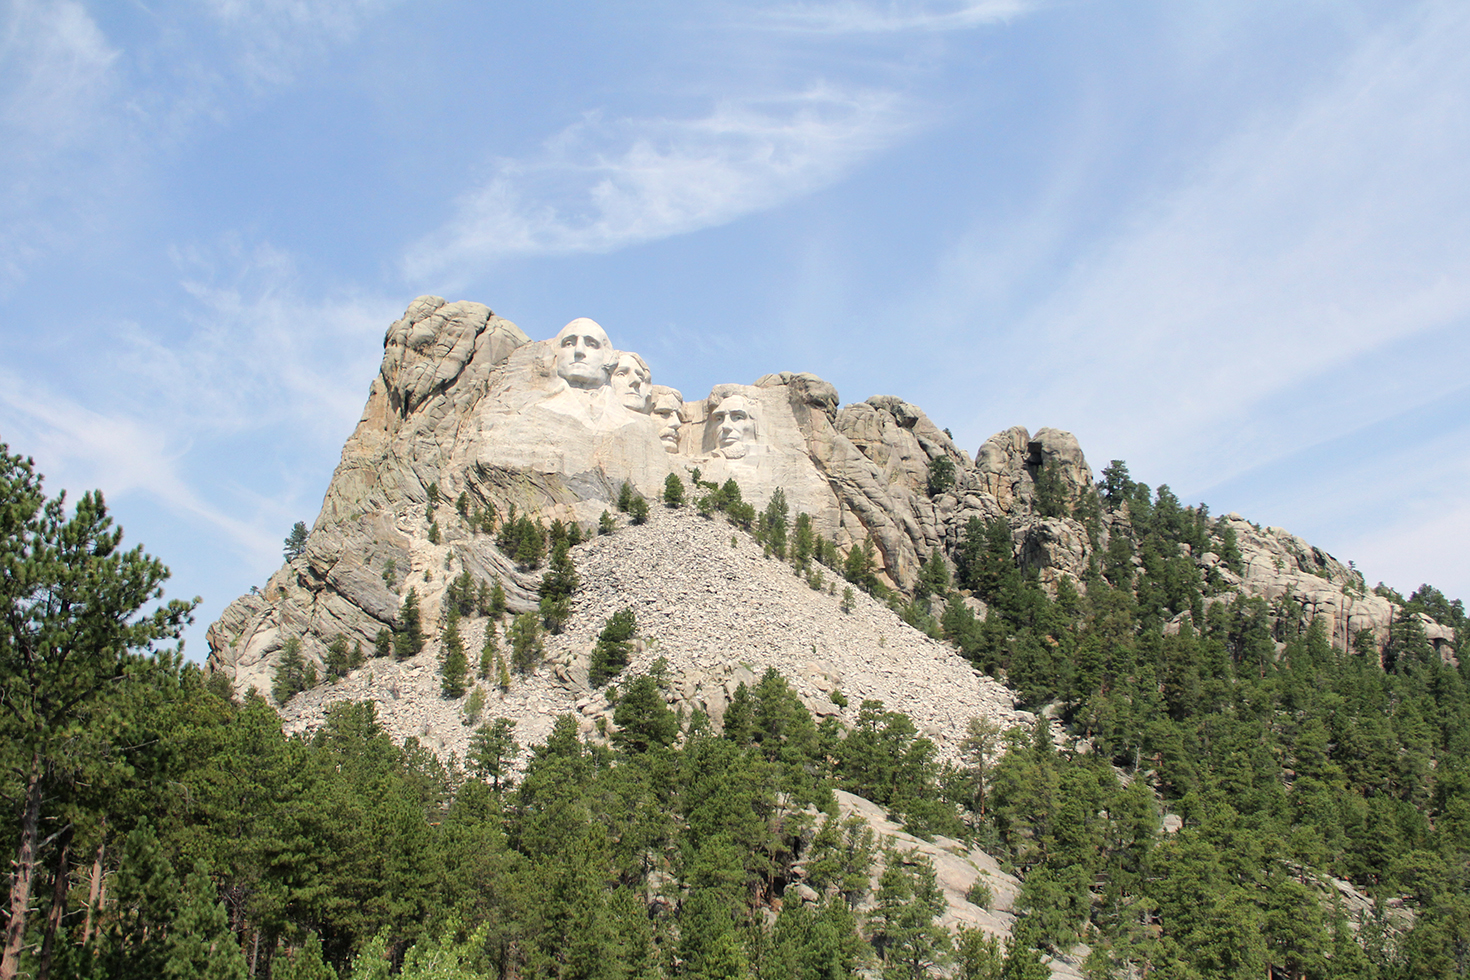 Mount Rushmore | Sturgis, South Dakota